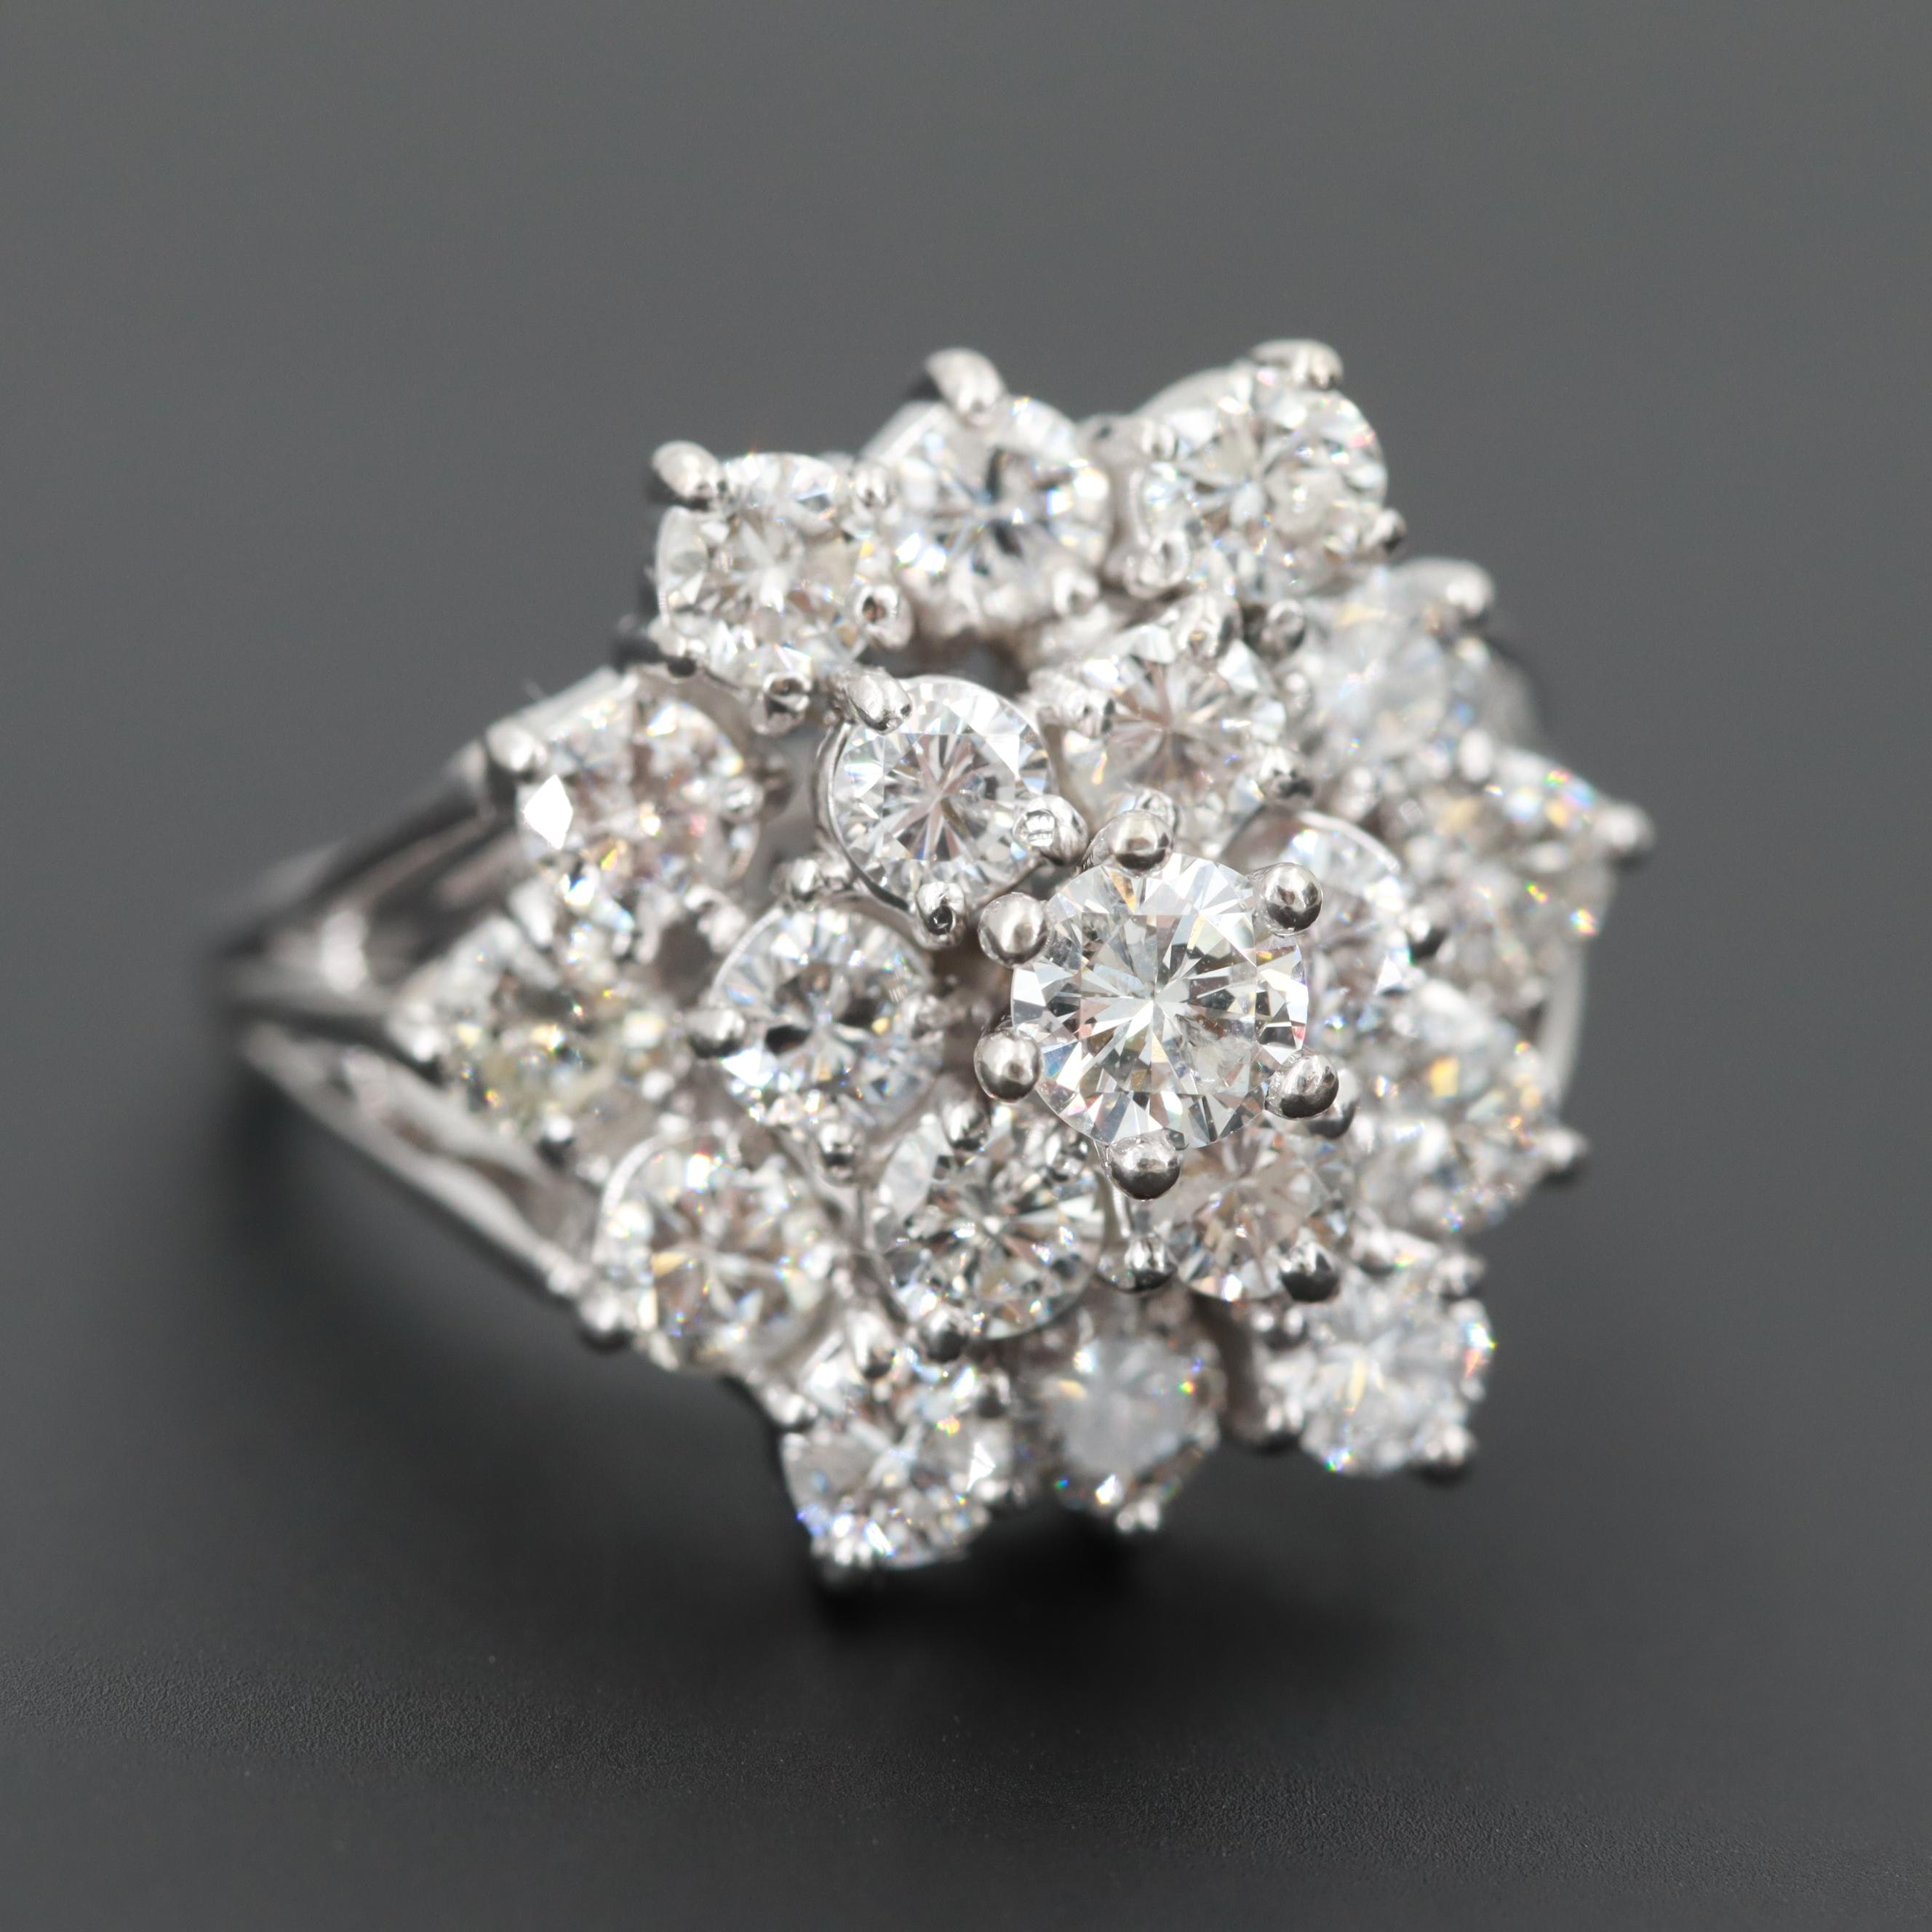 14K White Gold 2.81 CTW Diamond Cluster Ring